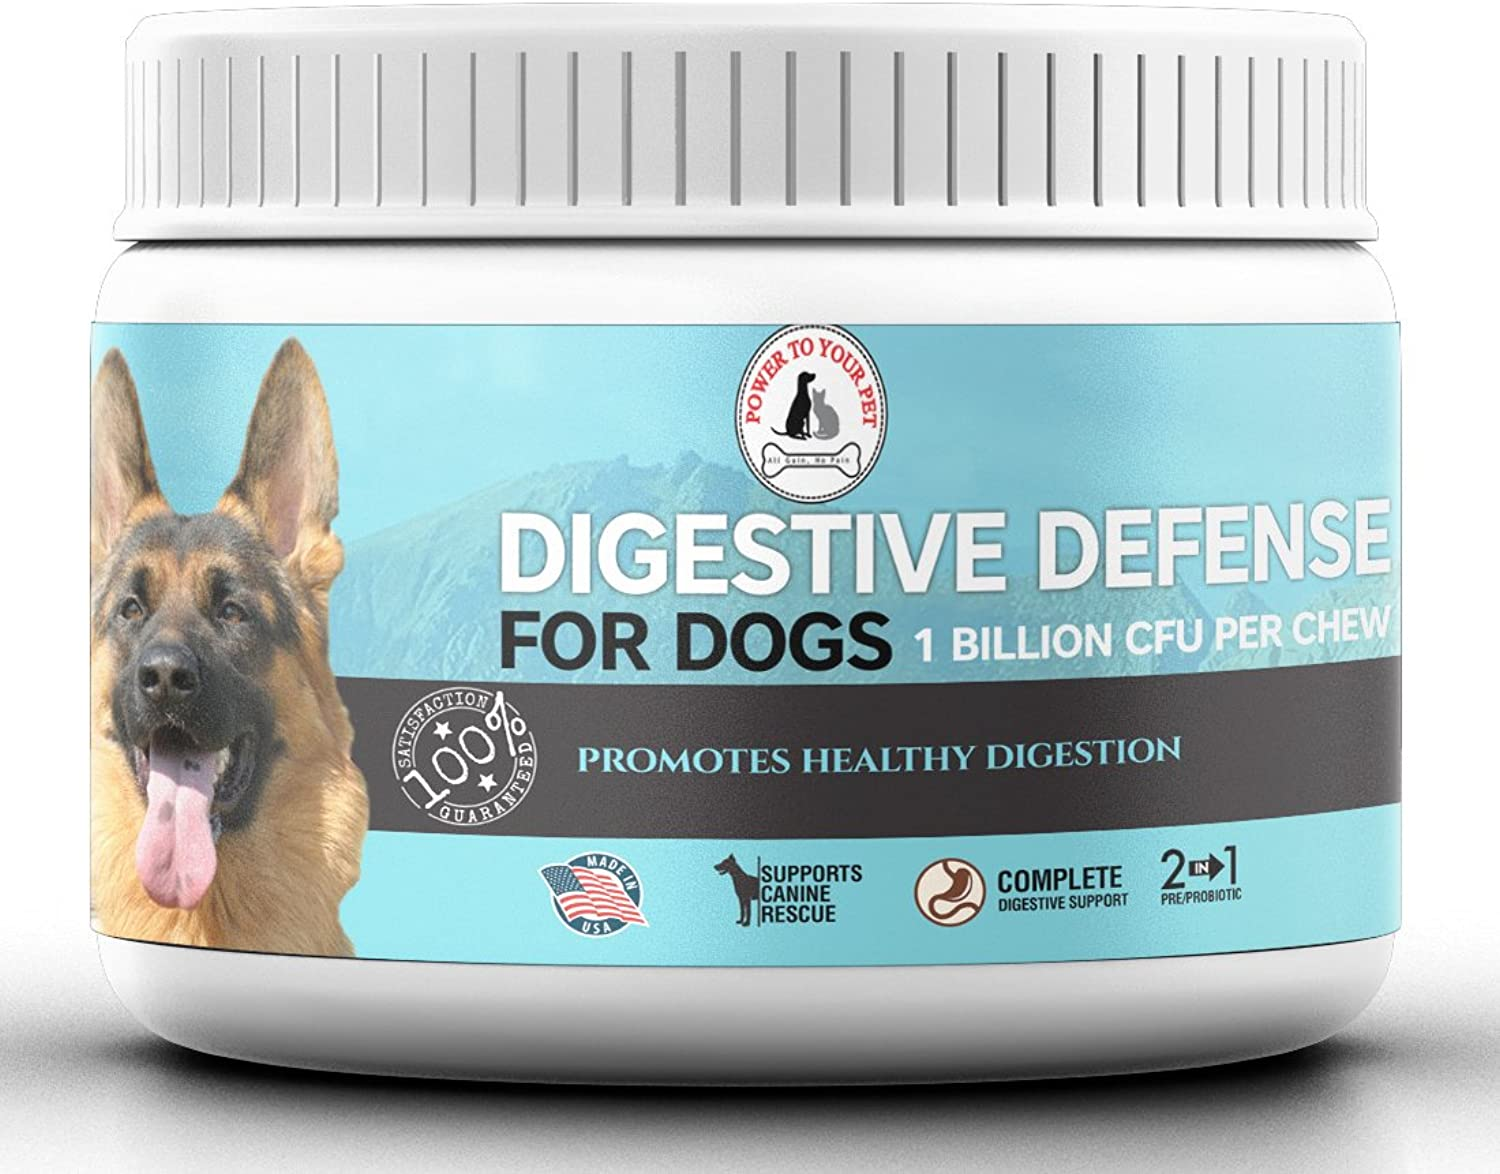 Digestive Defense 3in1 Chewable Probiotics for Dogs with Prebiotic and Enzymes for Total Support Reduces Gas, Bloating & Diarrhea Supports Dog Rescue Up to 4 Billion CFU's 120 Chews Bottle